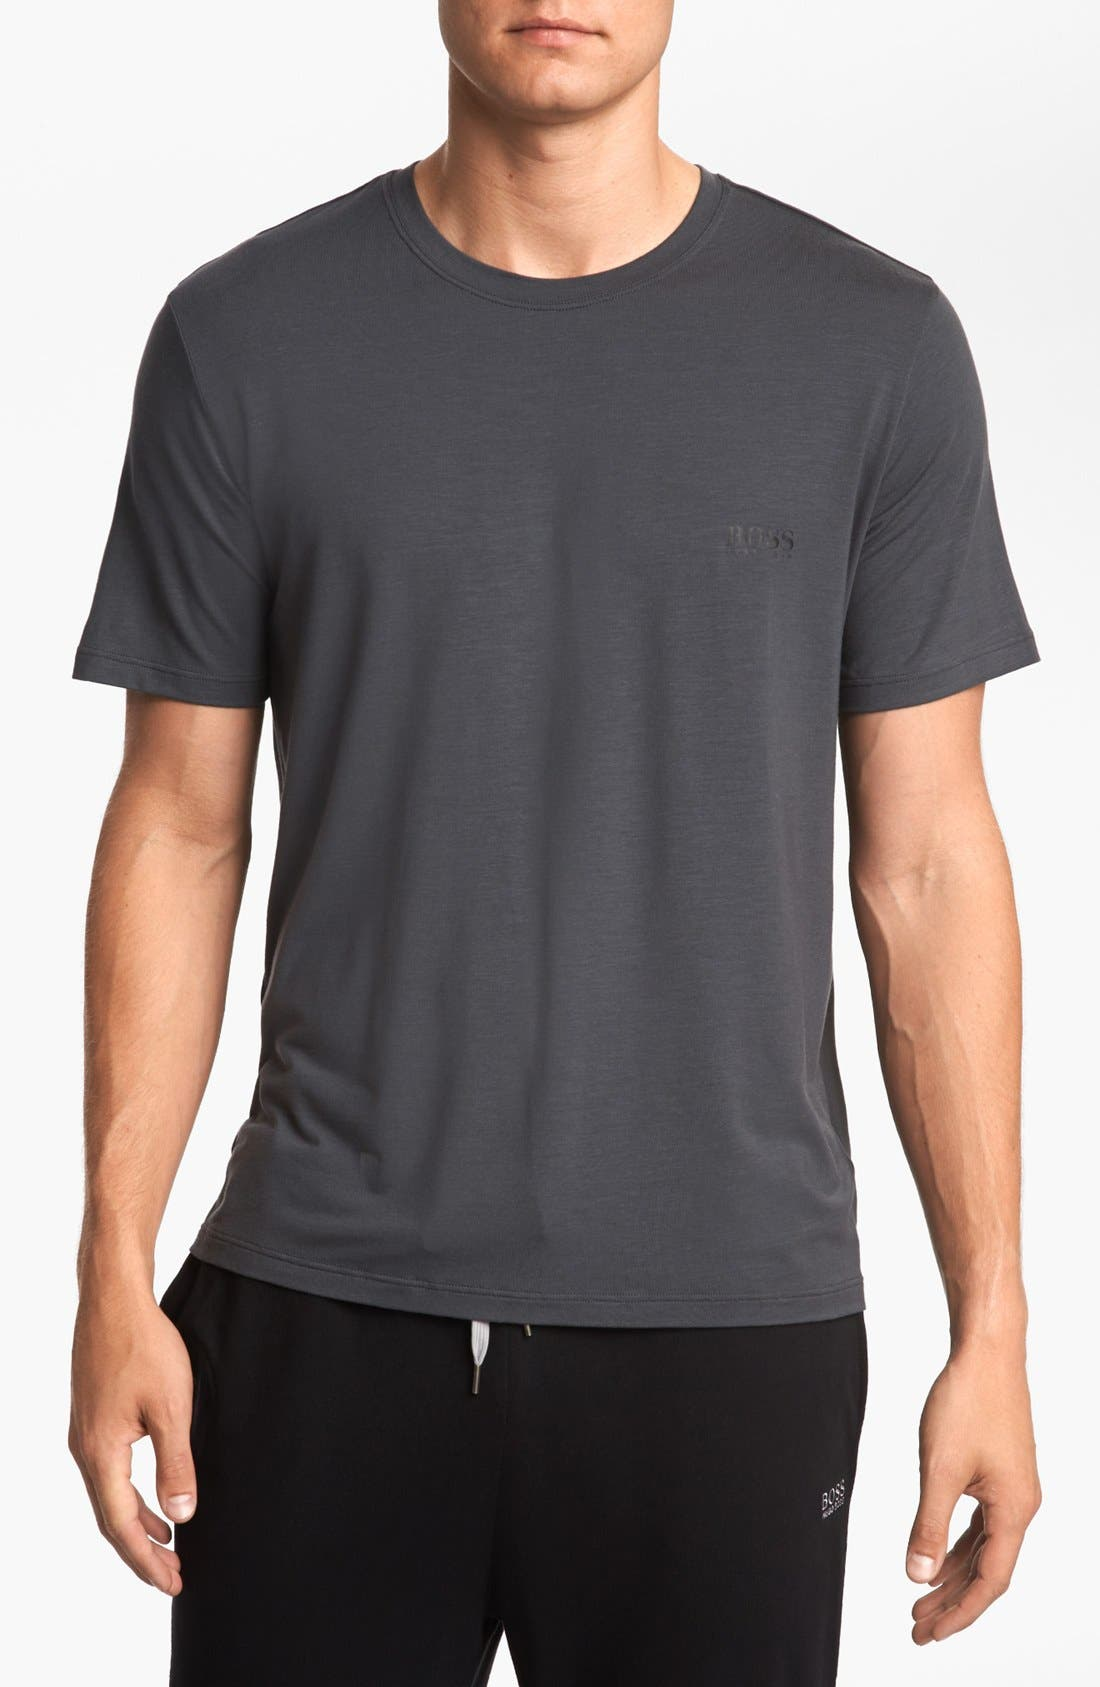 Main Image - BOSS HUGO BOSS 'Innovation 2' Short Sleeve T-Shirt